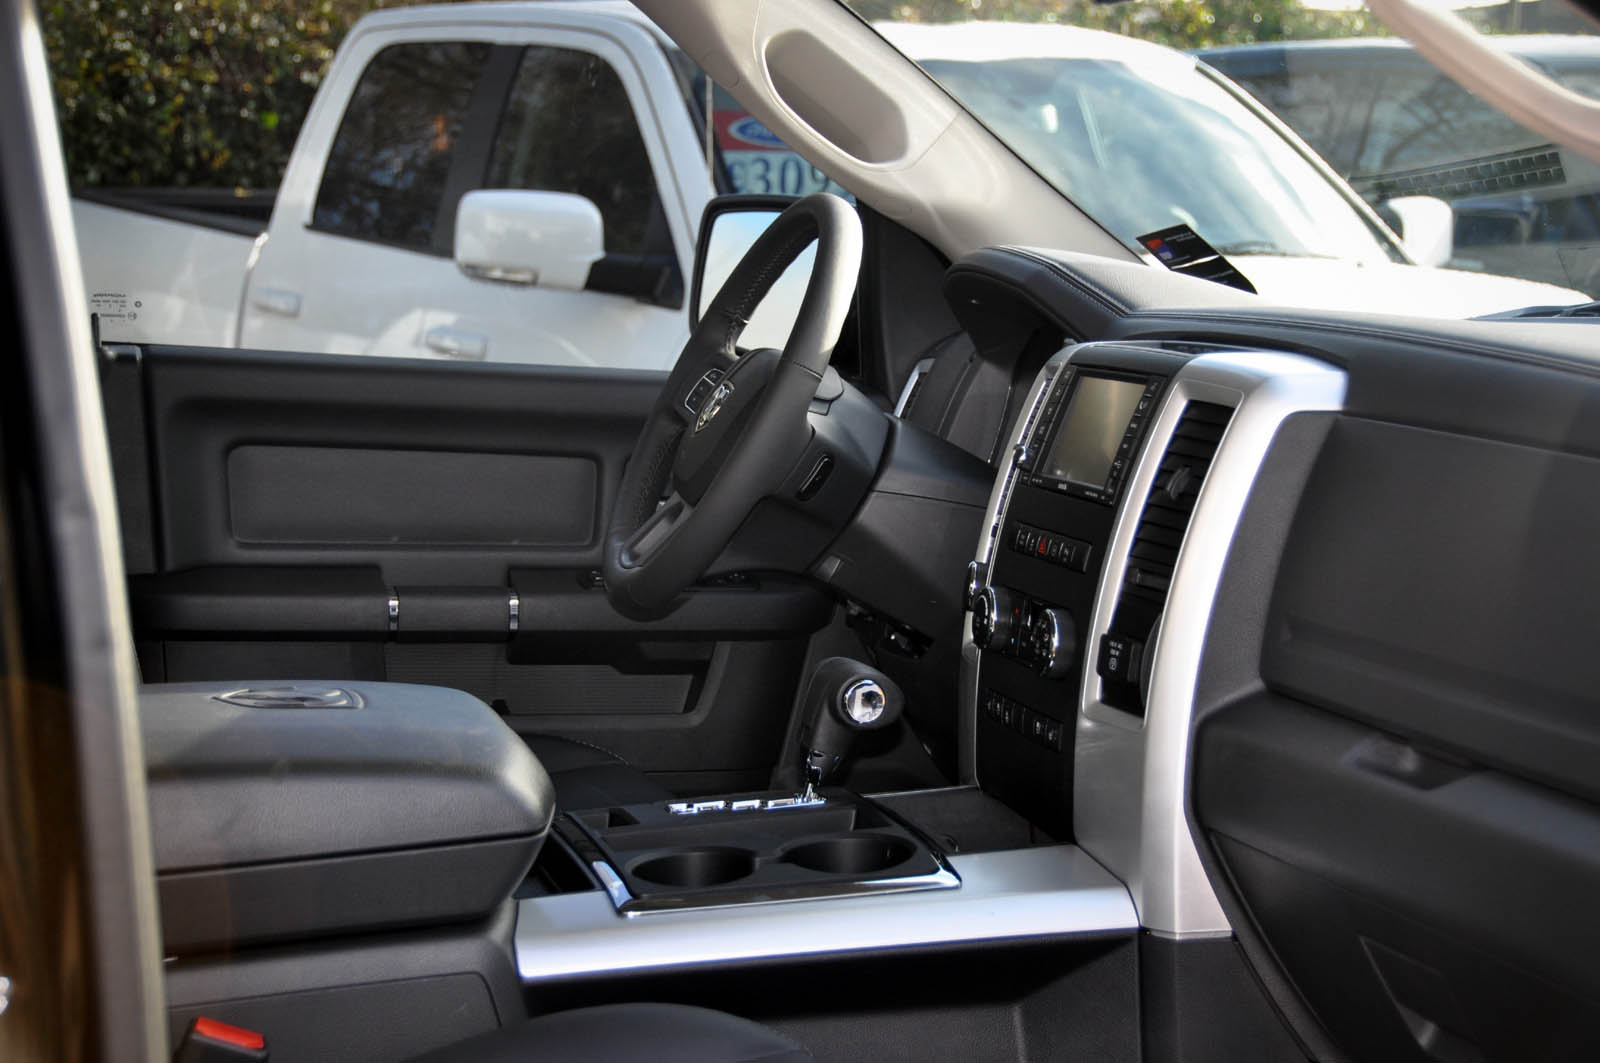 2011 61 Ford Explorer Limited Awd 6 Seater 12 000